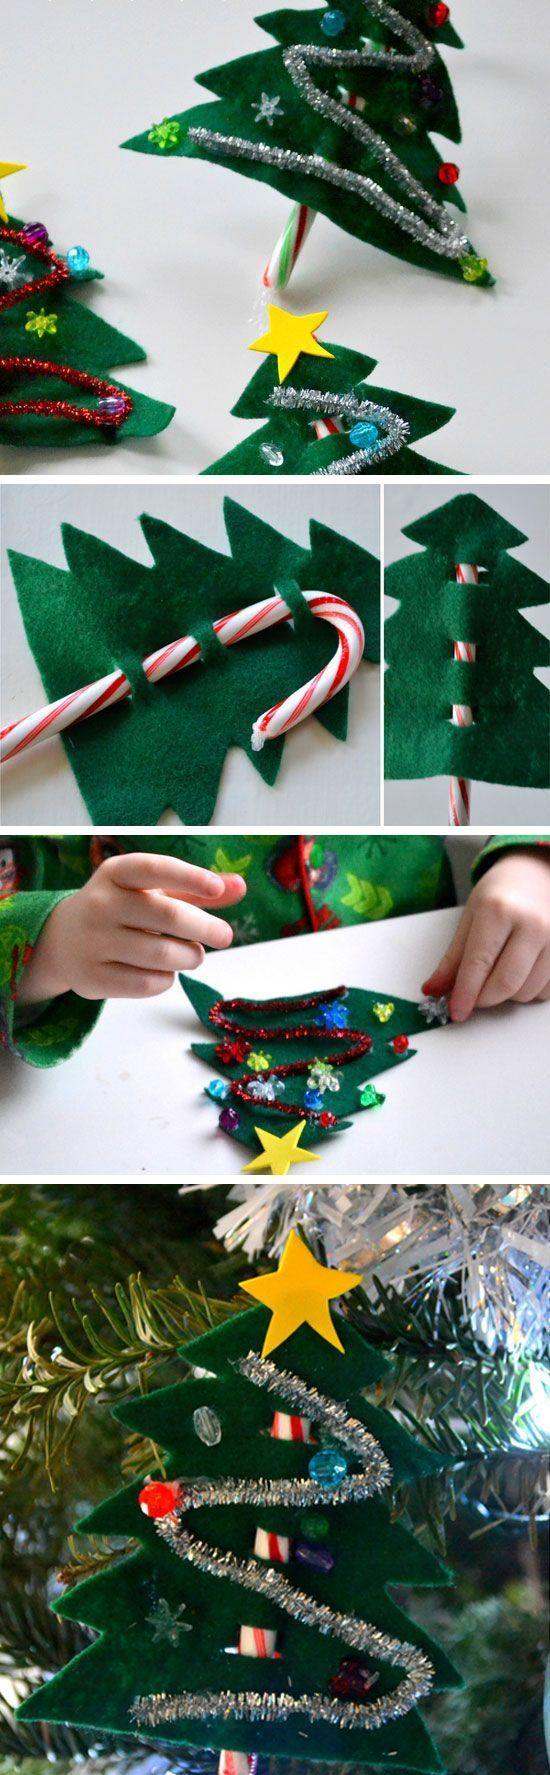 Christmas tree decoration ideas for kids - 26 Super Easy Christmas Crafts For Kids To Make